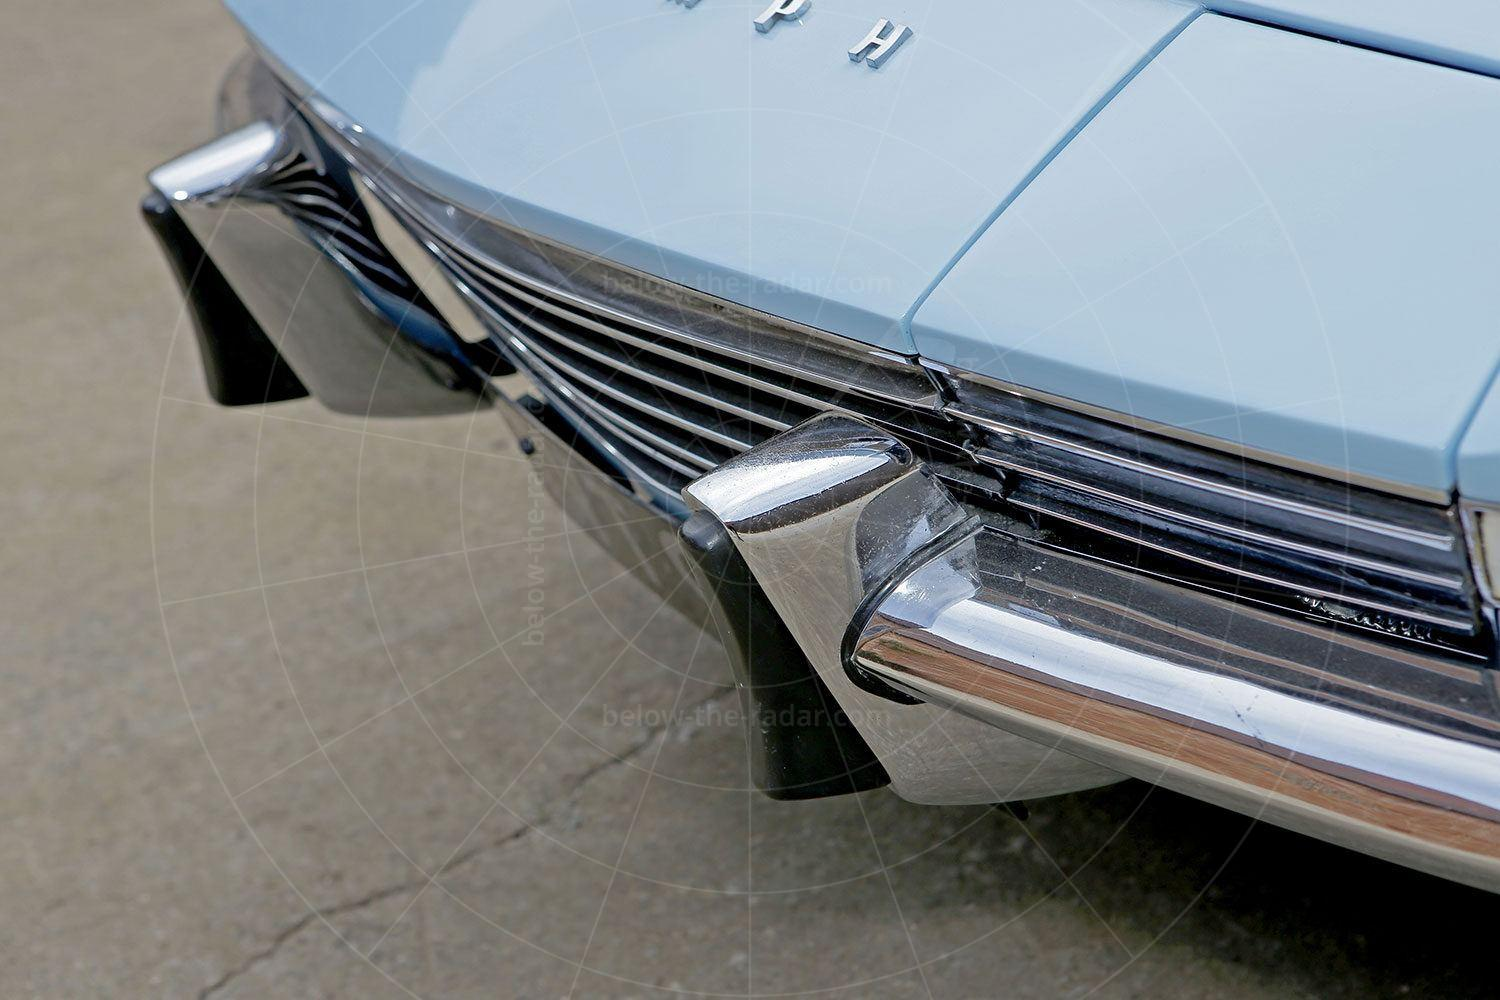 Triumph Fury bumpers and over-riders Pic: magiccarpics.co.uk | Triumph Fury bumpers and over-riders